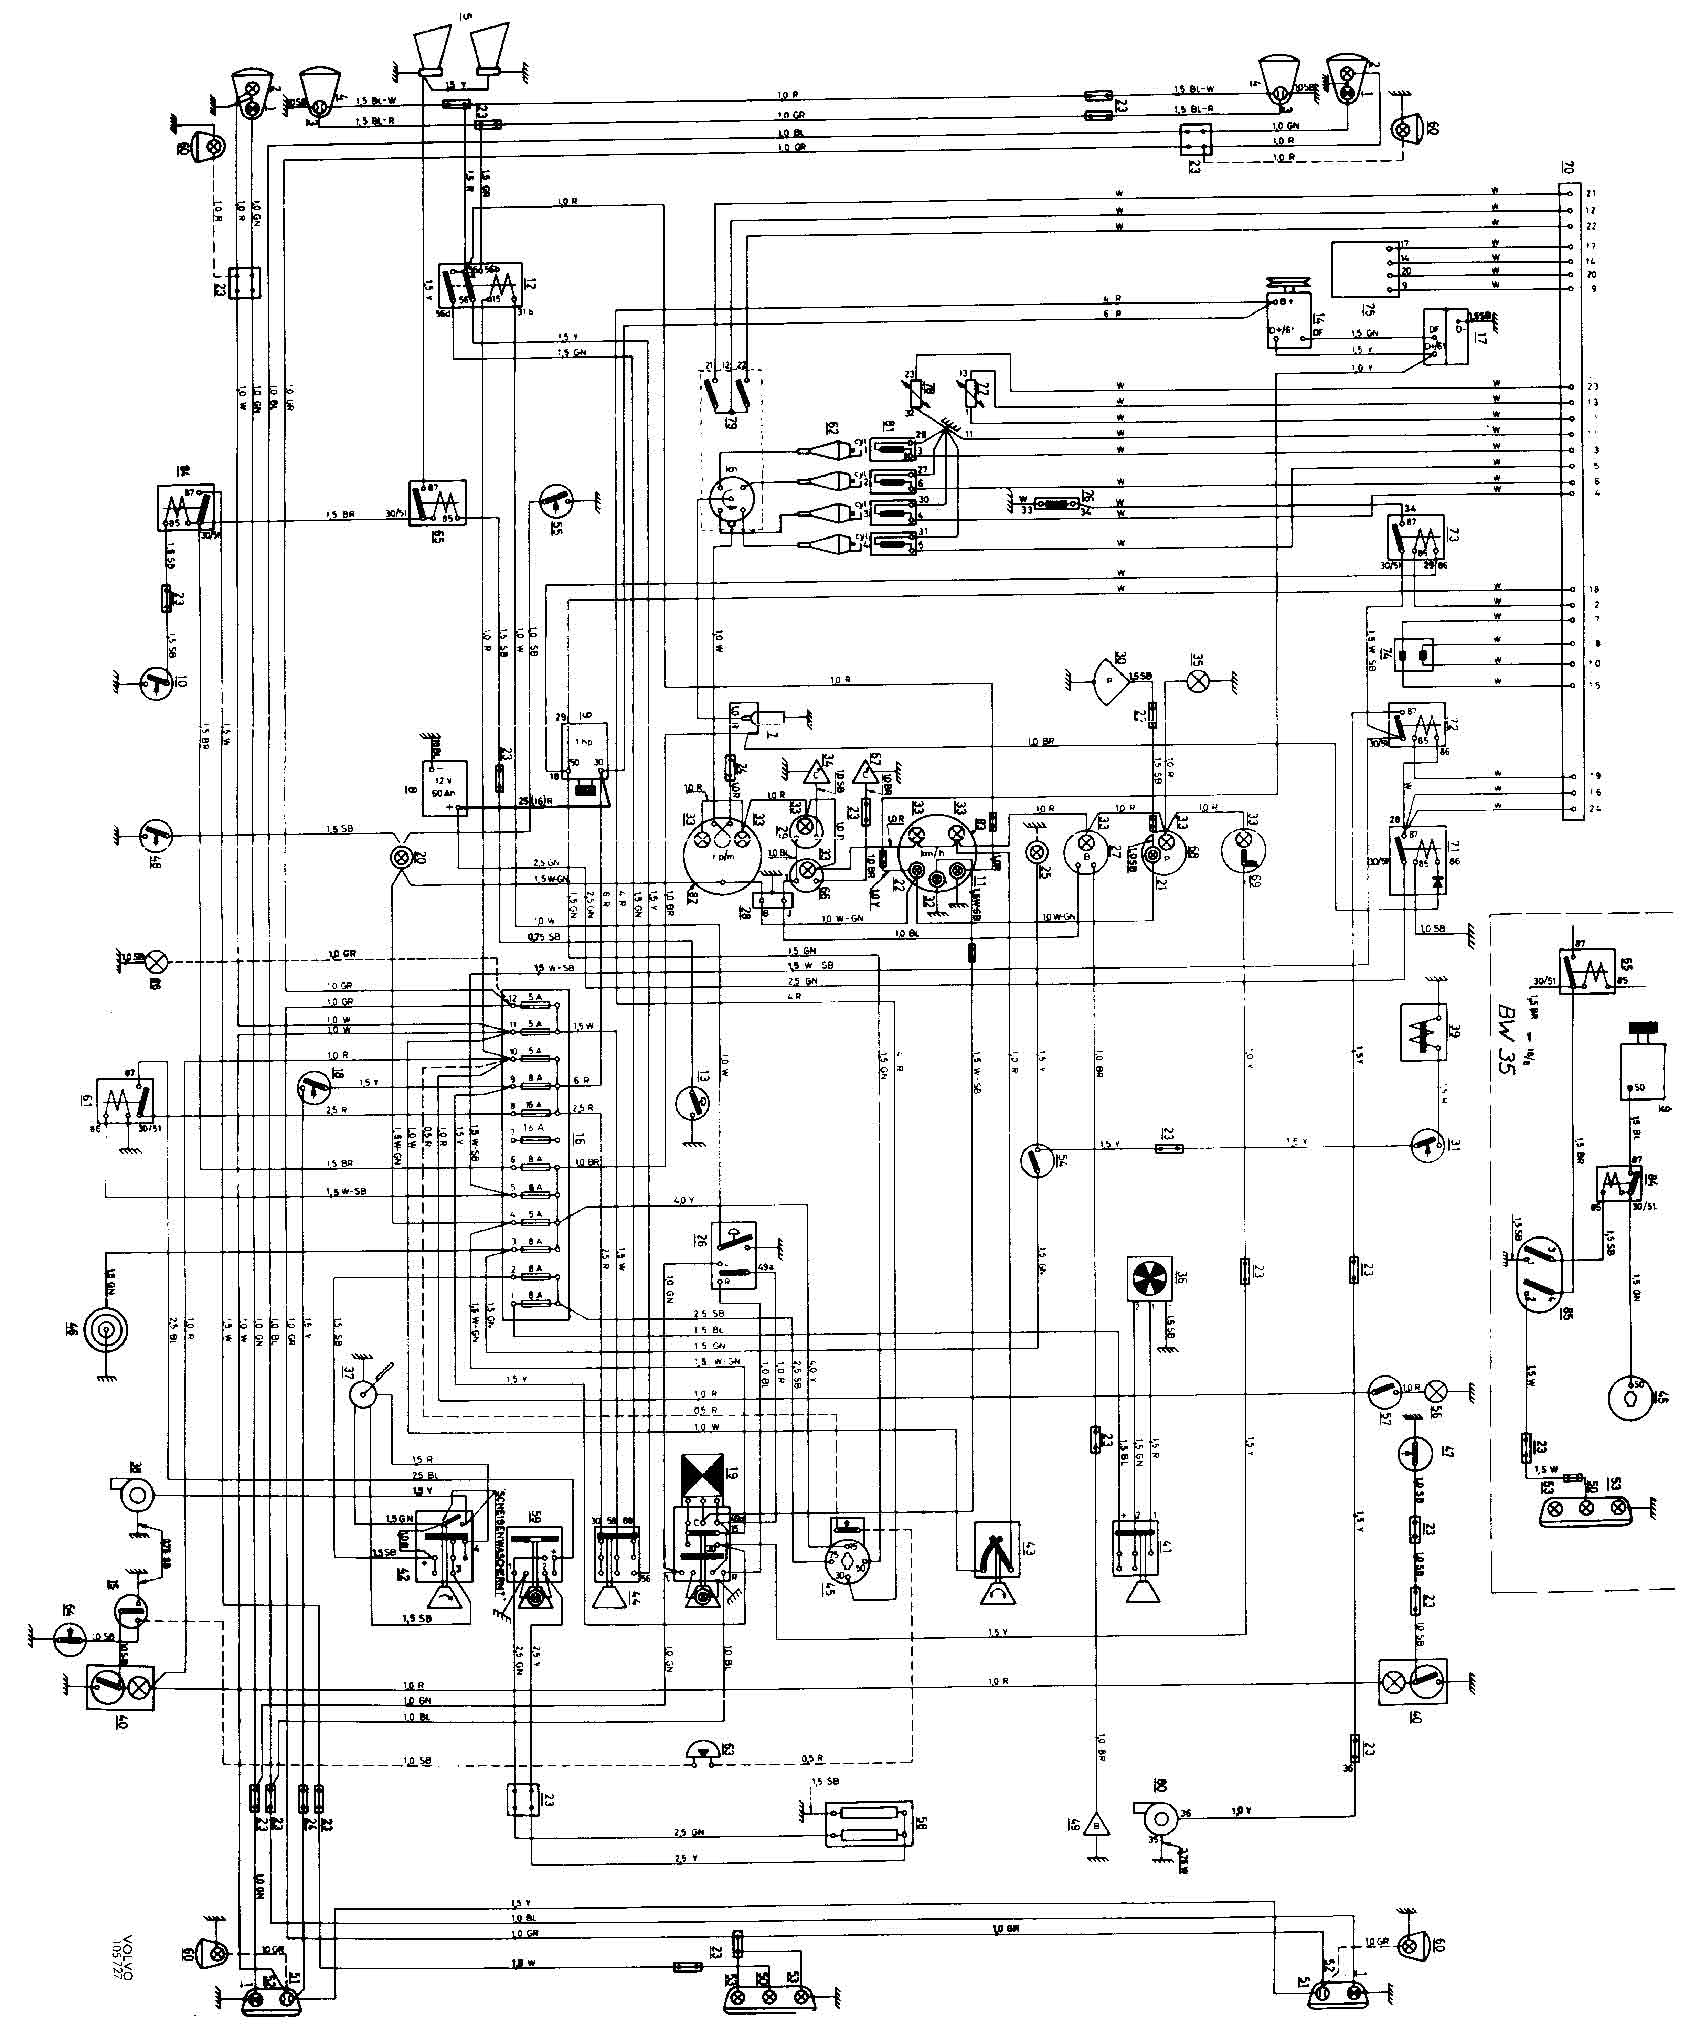 1800E Wiring Diagram 100 [ volvo 850 fog light wiring diagram ] buy perodua axia Volvo 850 Engine Diagram at reclaimingppi.co